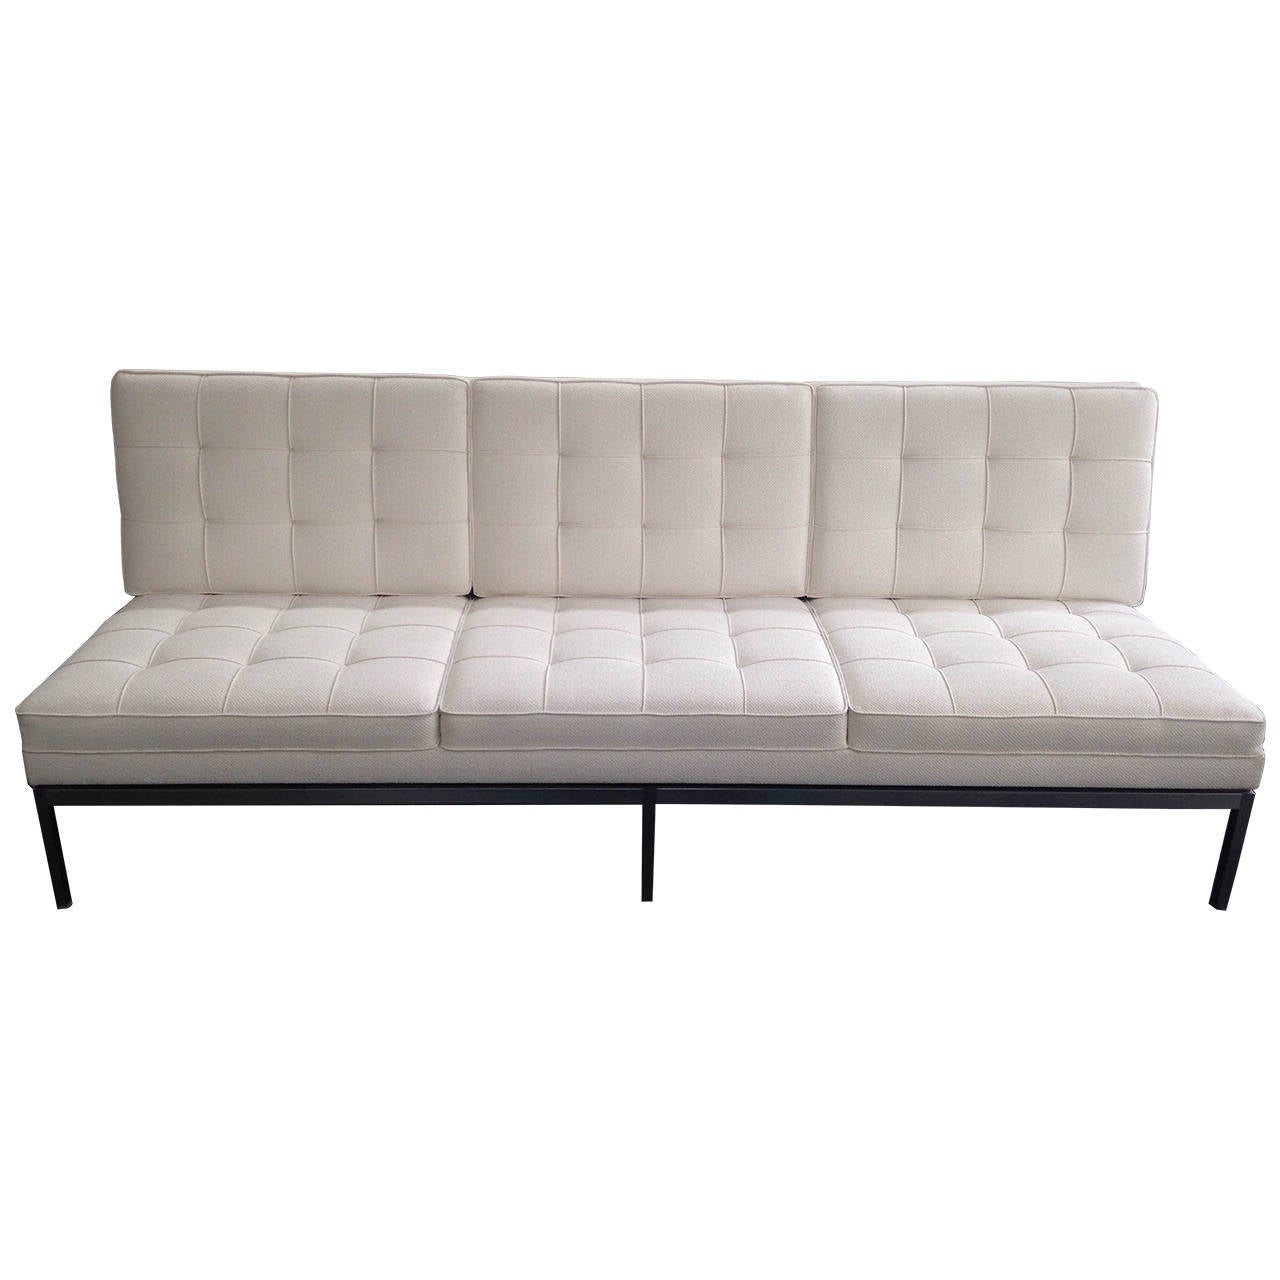 Florence Knoll Three Seat Sofa For Knoll International 1958 At 1stdibs